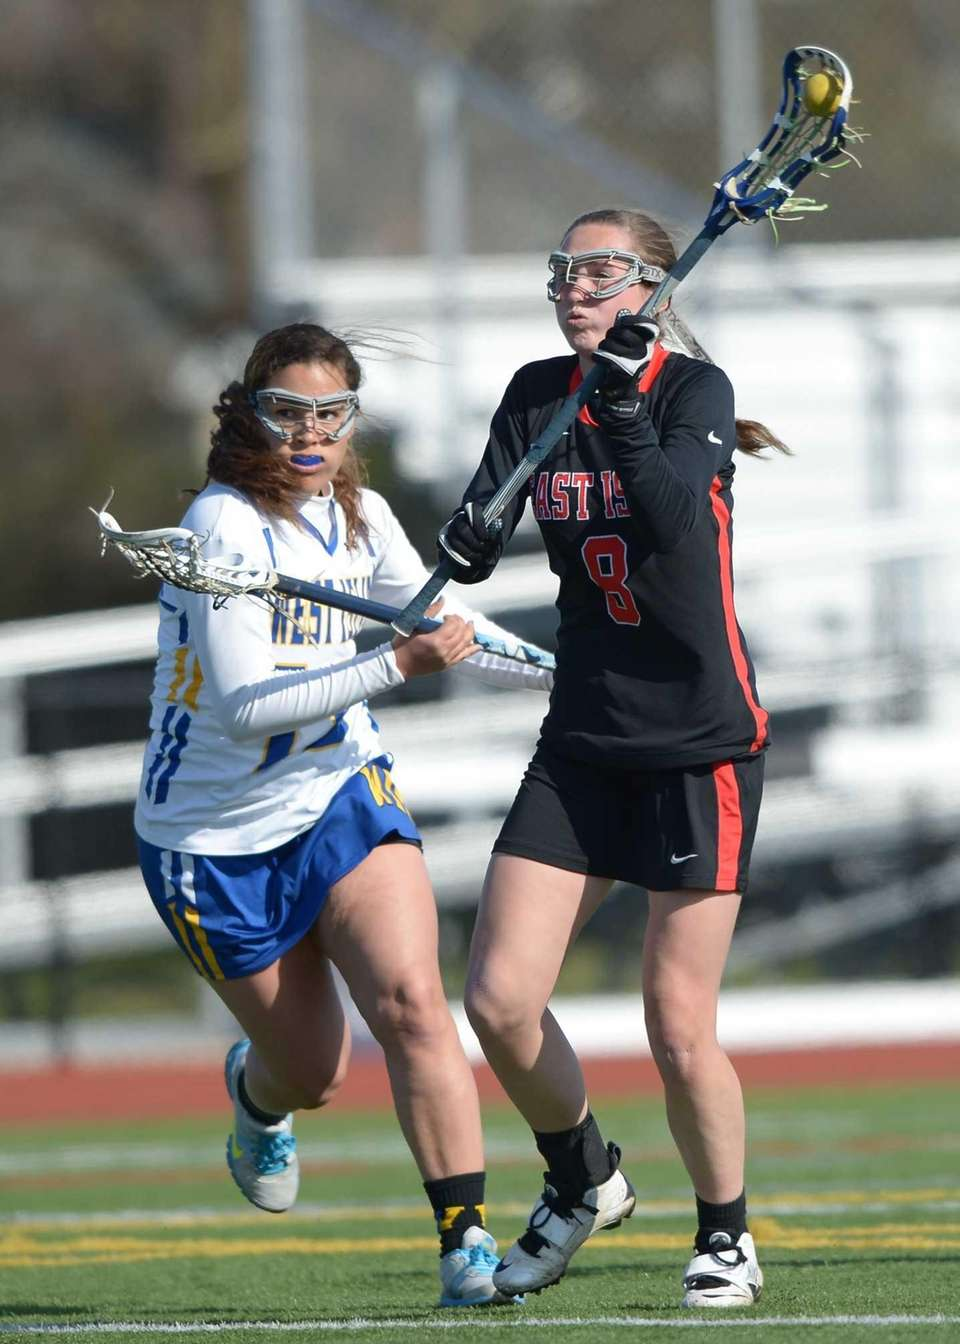 East Islip's Valerie Pelling (8) shoots for the